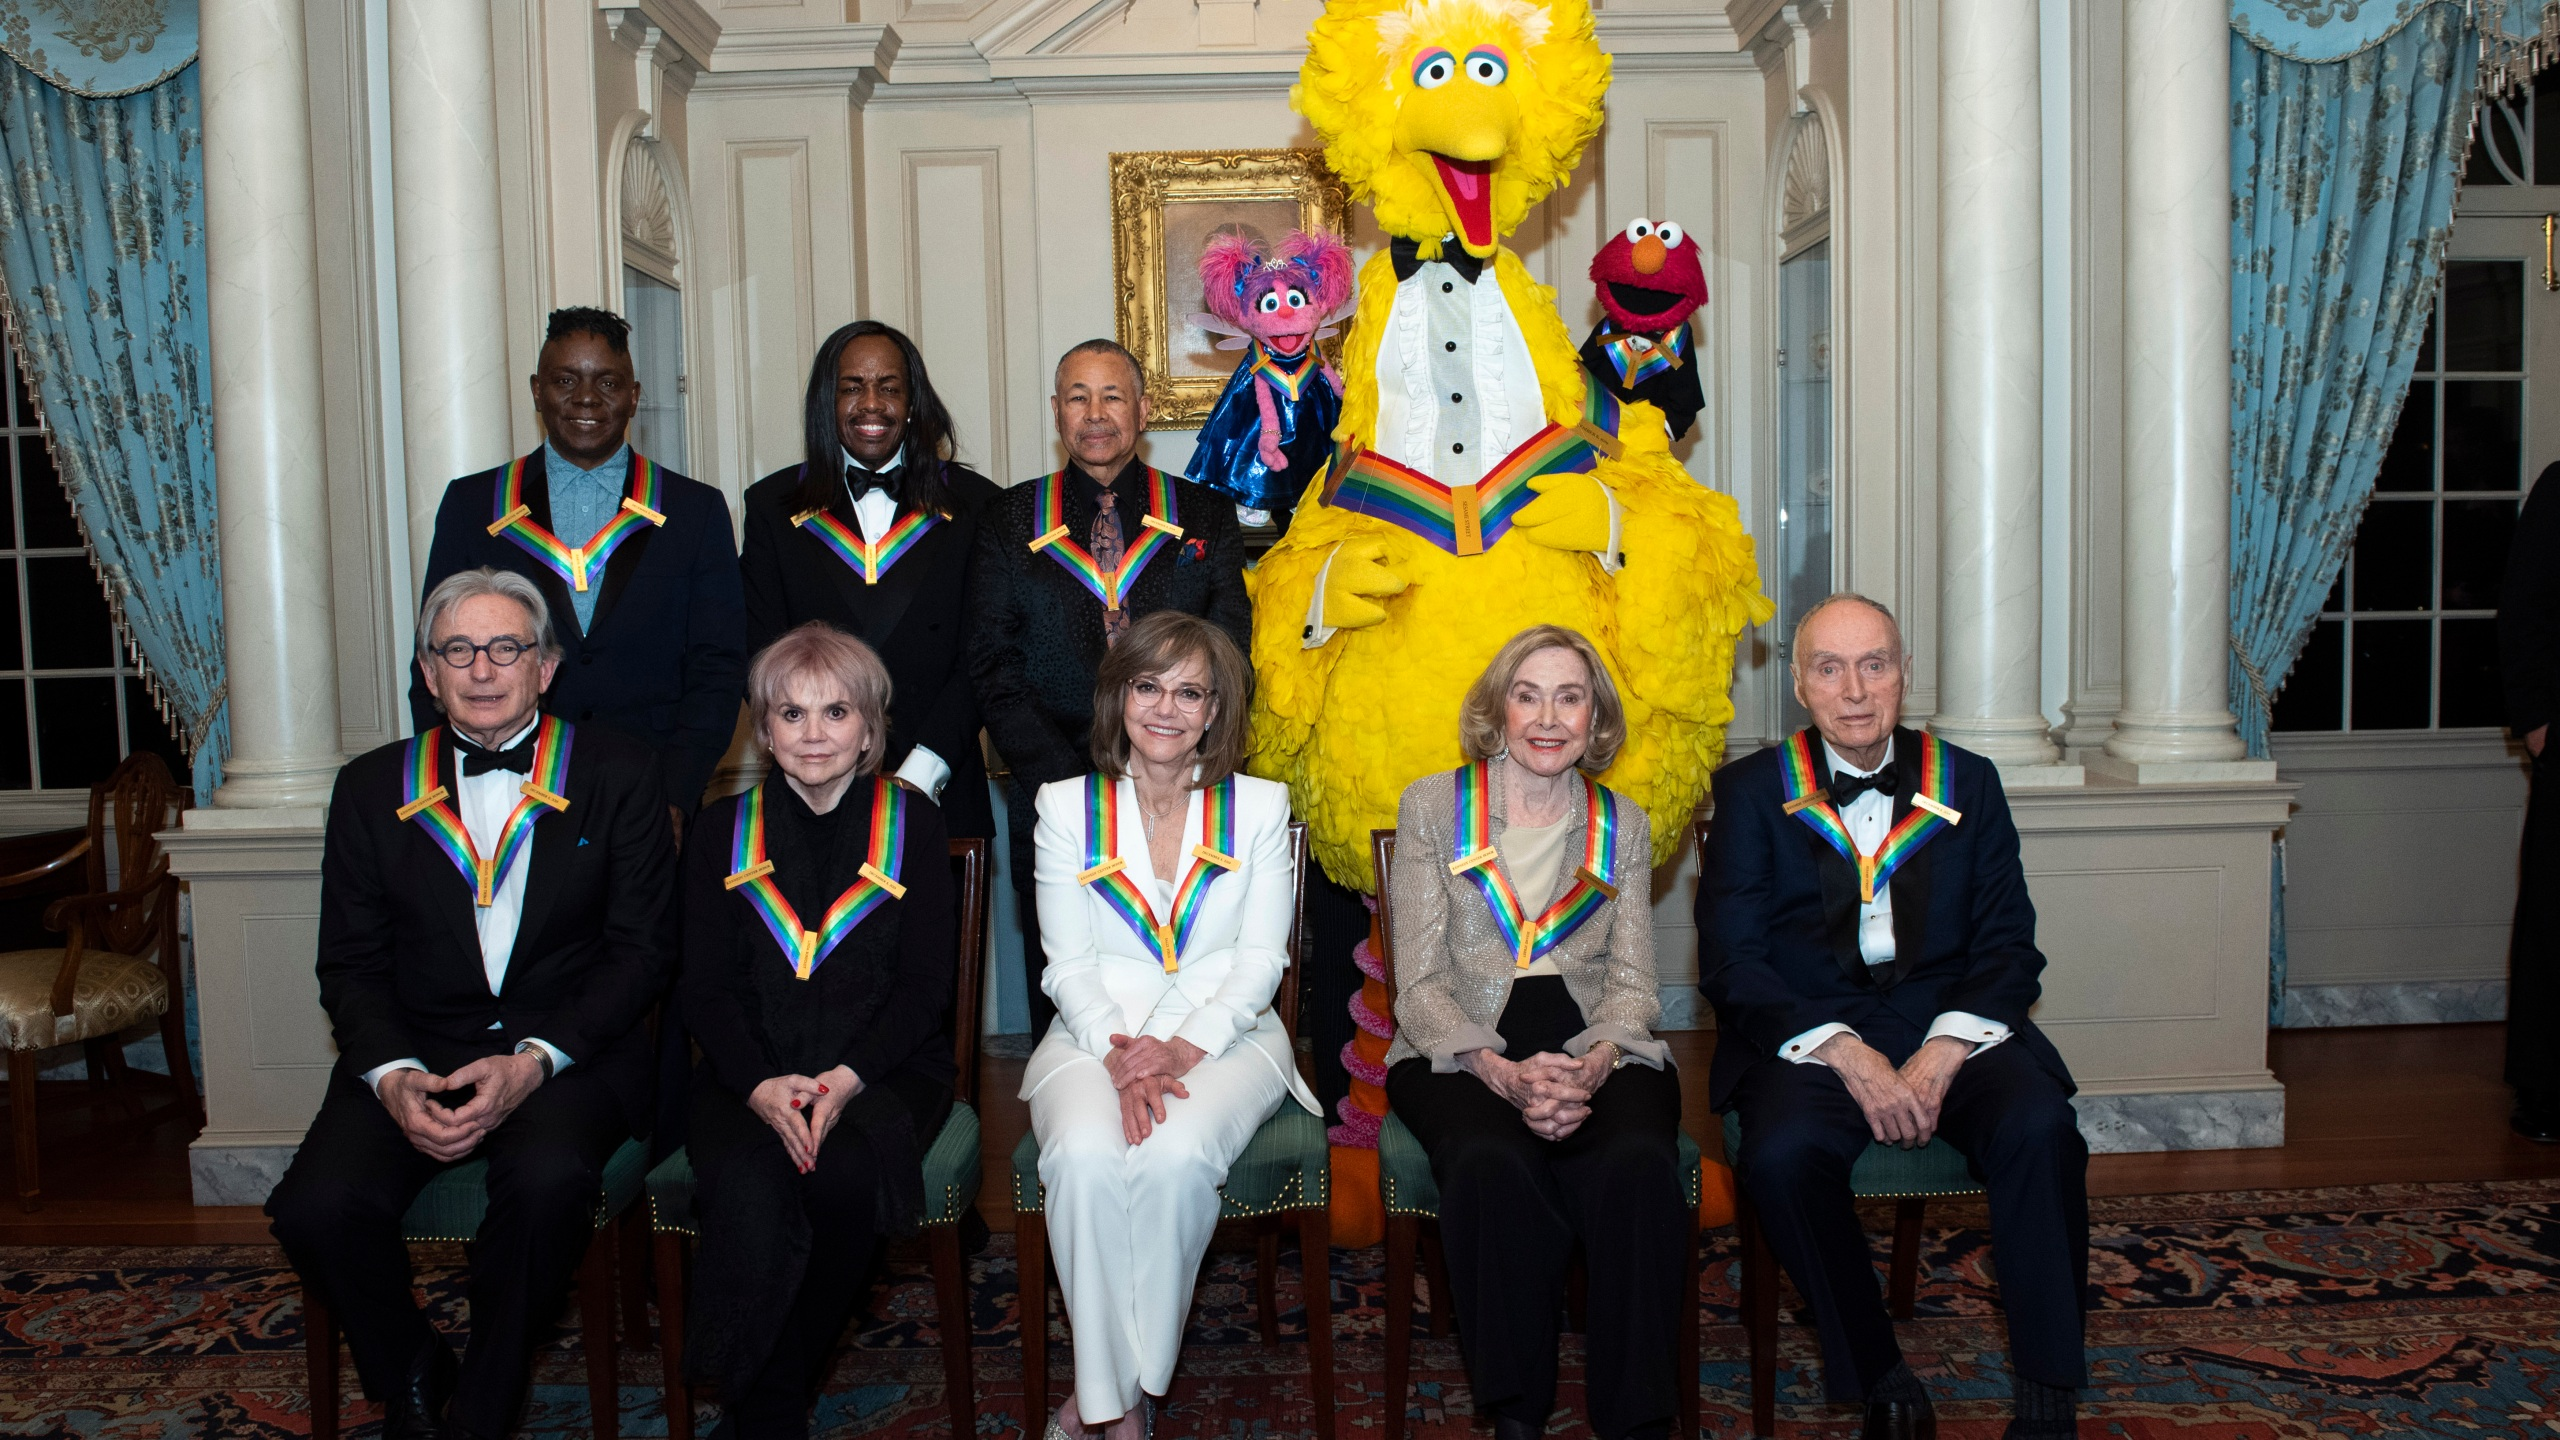 Michael Tilson Thomas, Linda Ronstadt, Sally Field, Joan Ganz Cooney, Lloyd Morrisett, Philip Bailey, Verdine White, Ralph Johnson